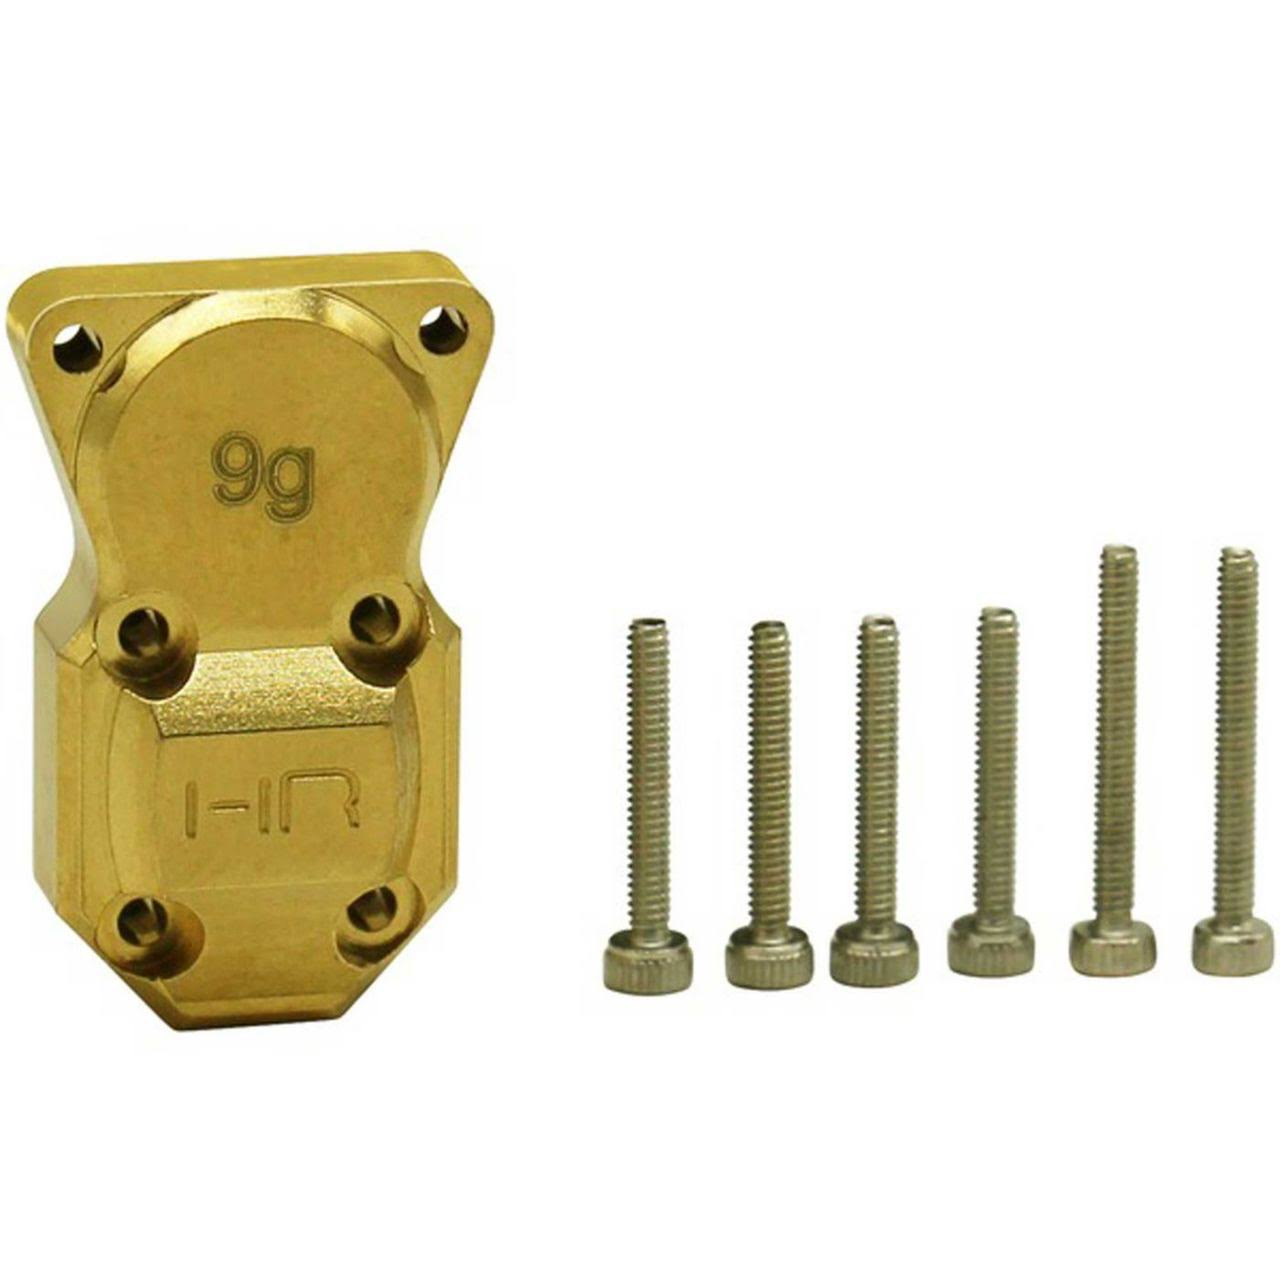 Hot Racing SXTF12CH - 9g Brass Diff Cover SCX24